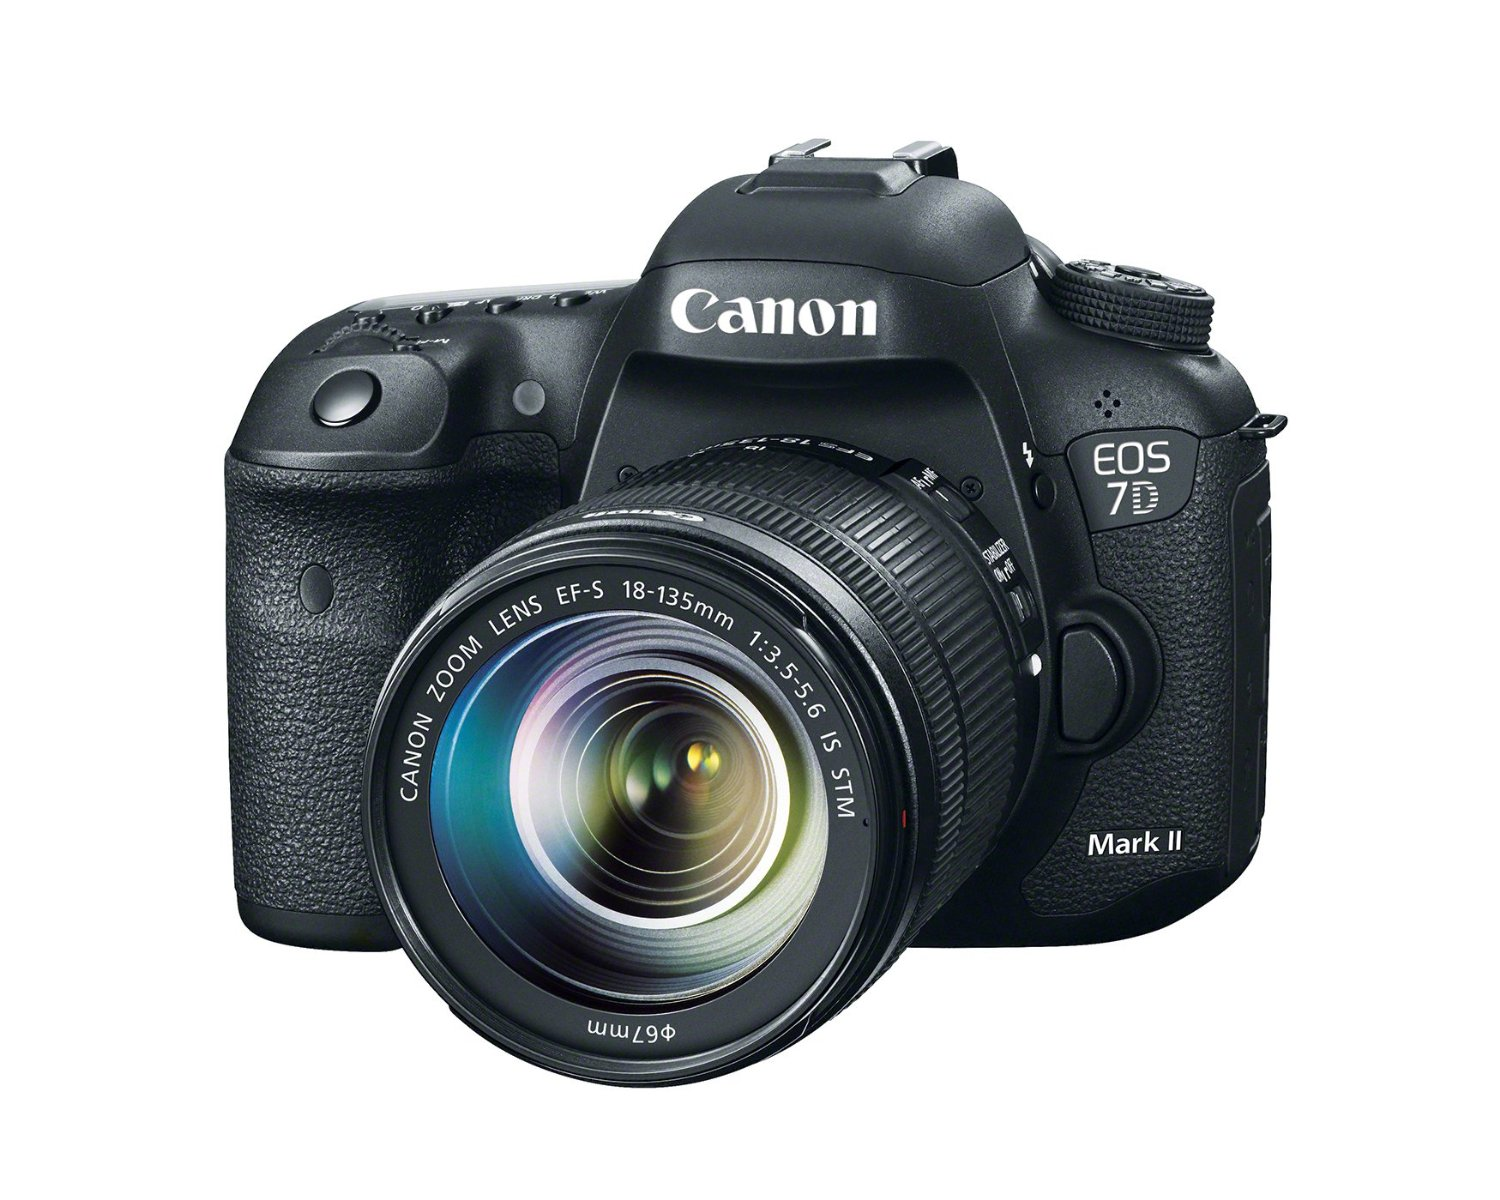 Canon EOS 7D Mark II w 18-135mm lens